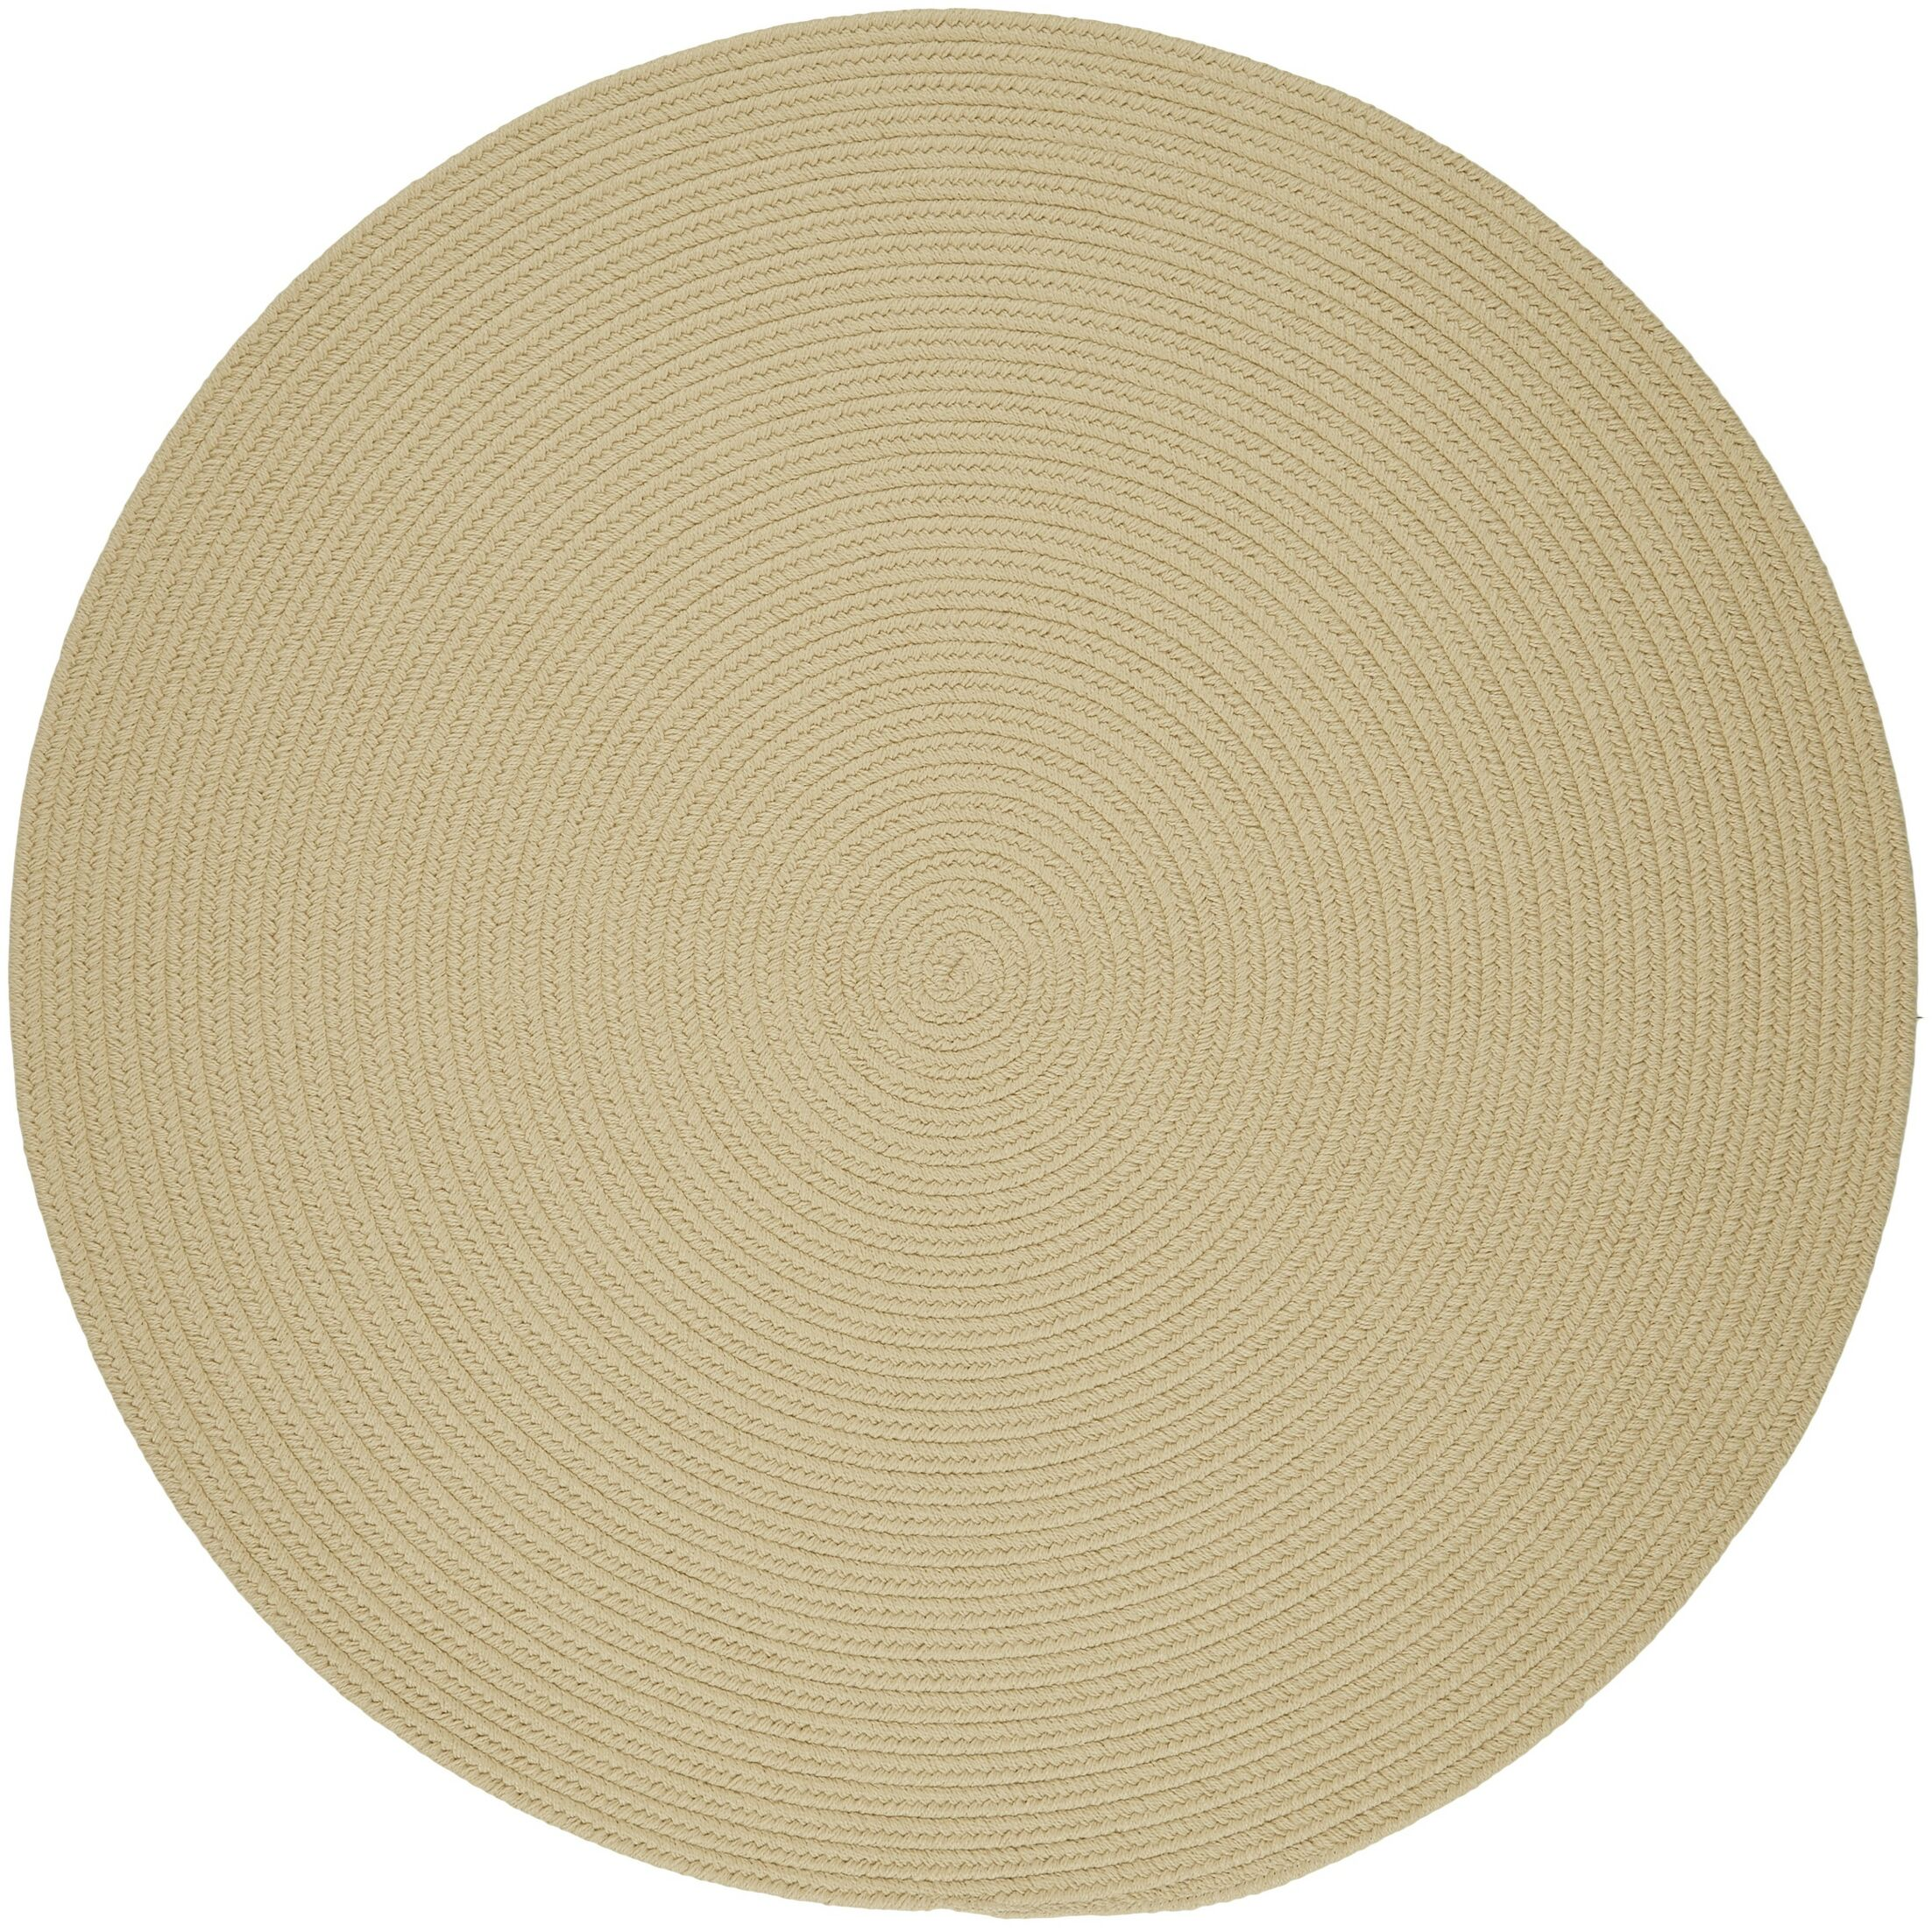 Handmade Cream Indoor/Outdoor Area Rug Rug Size: Round 8'